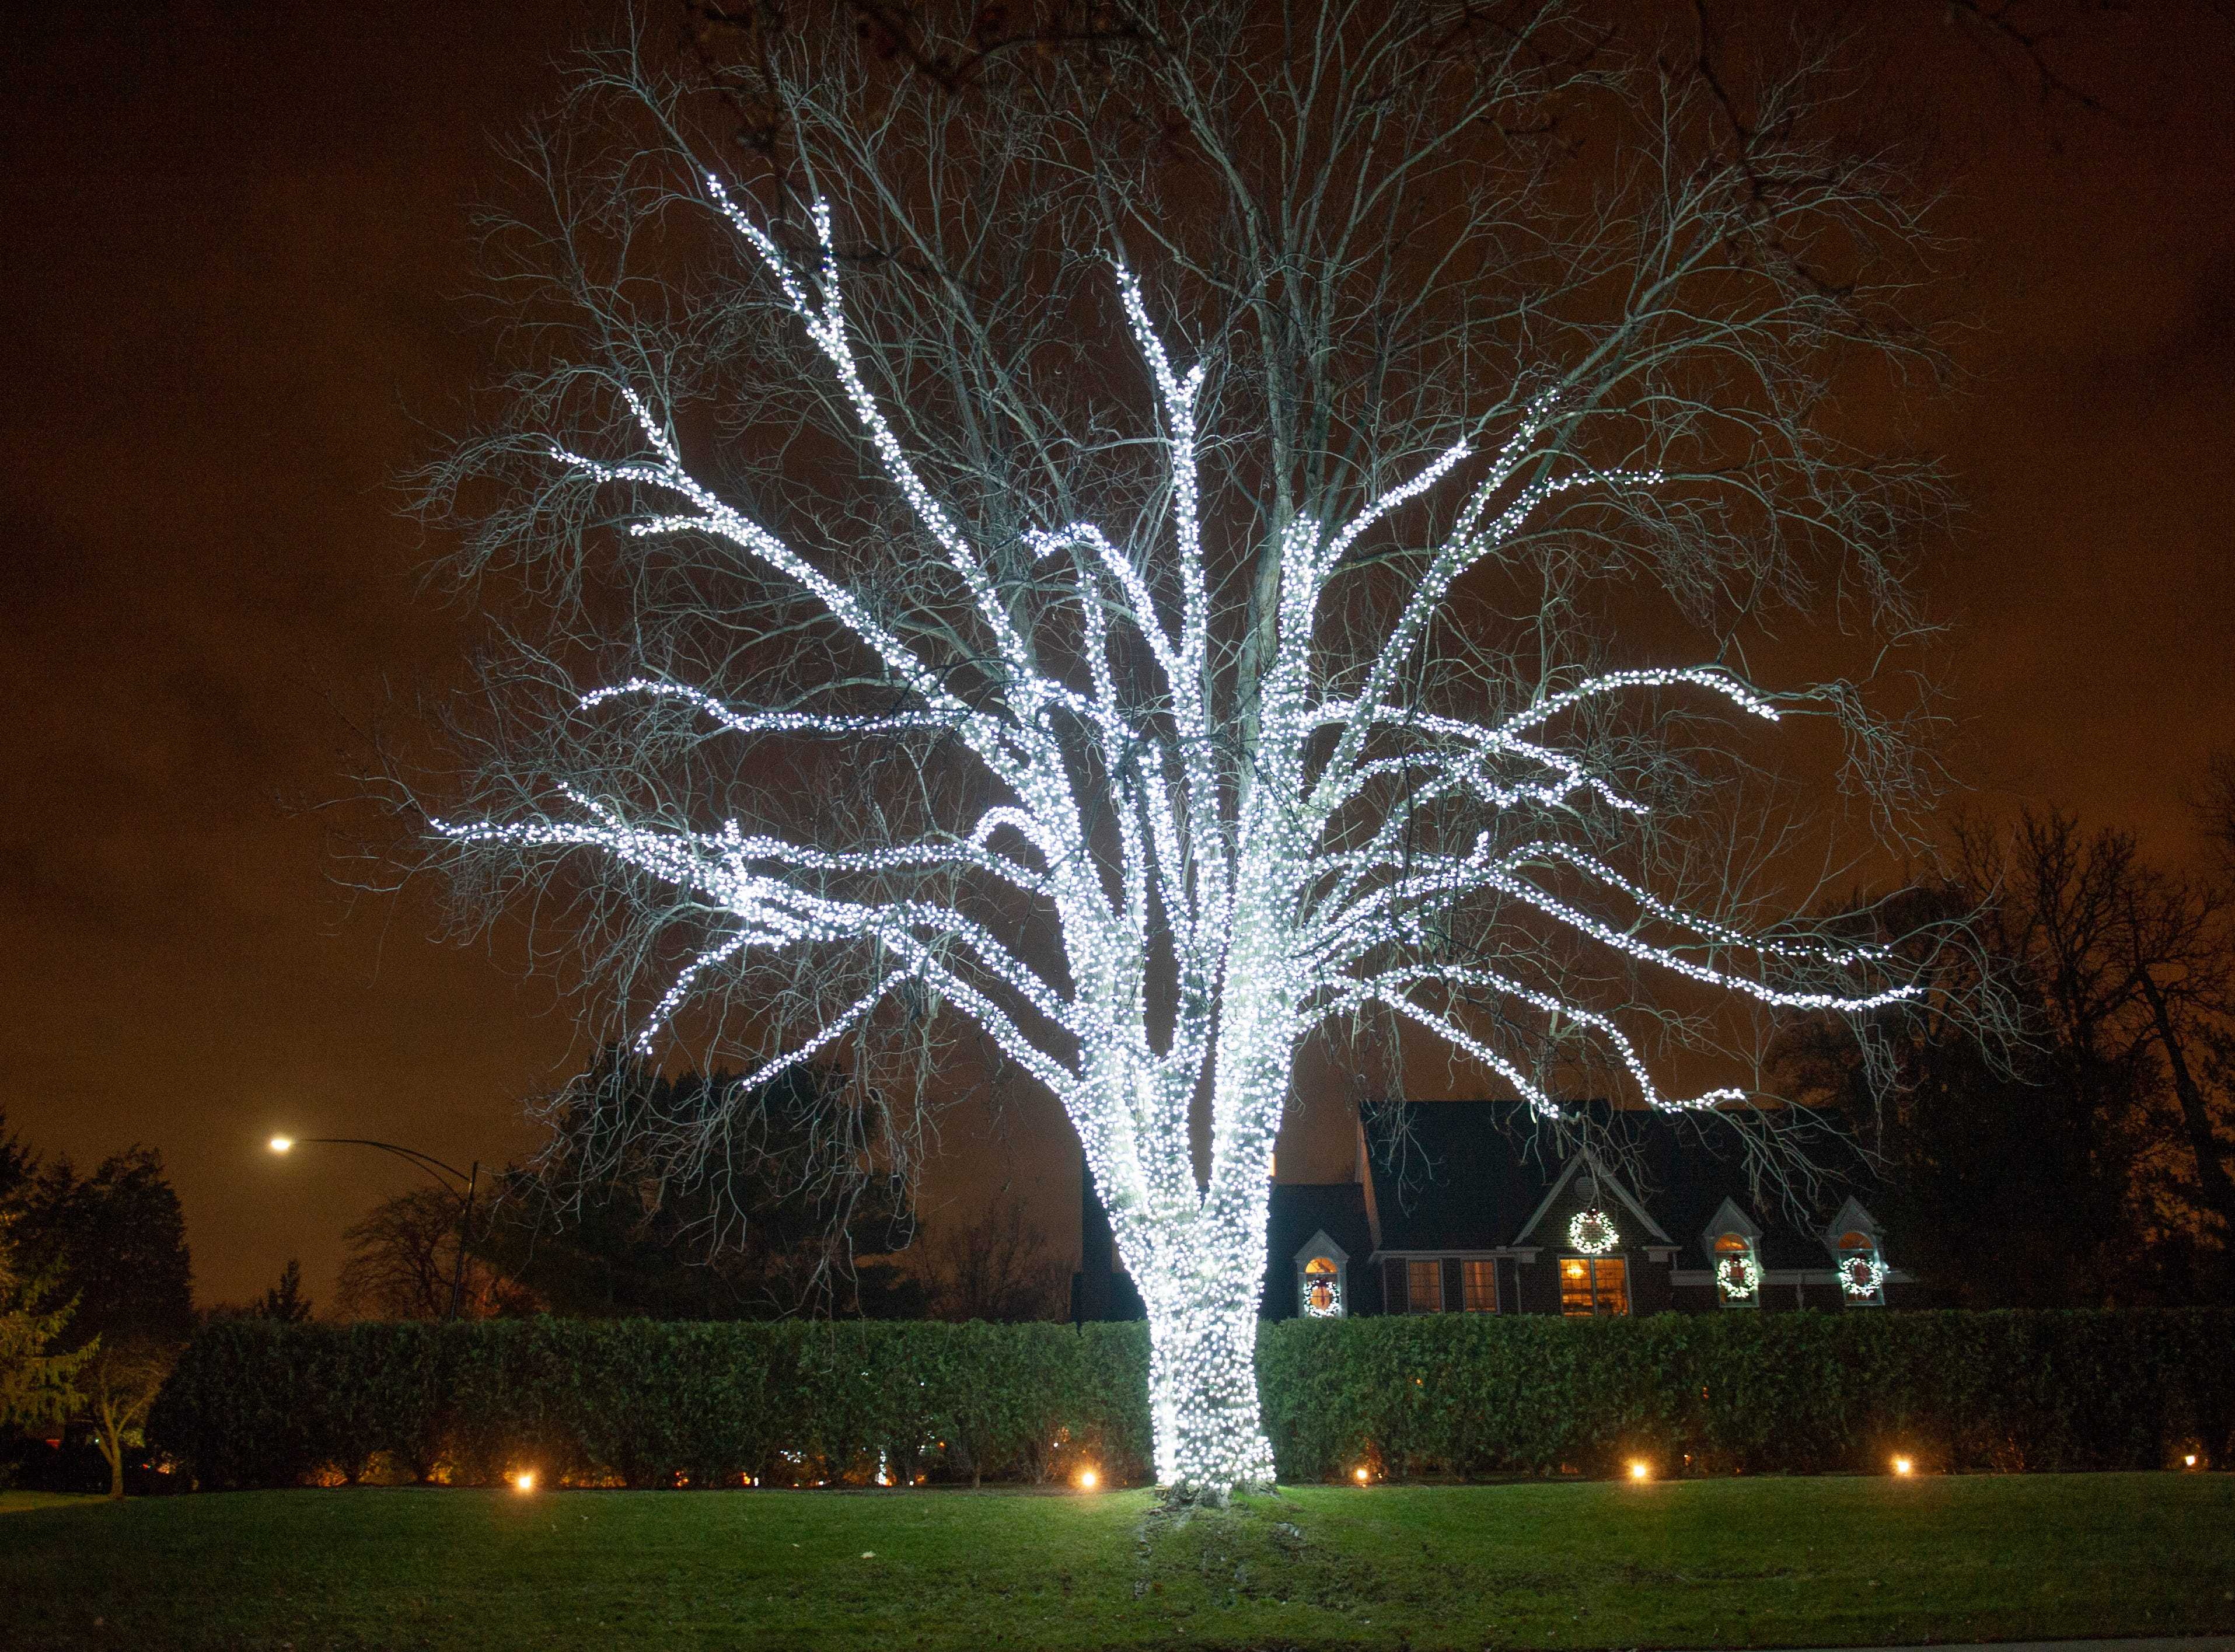 An enormous tree is illuminated in whie light in front of a home along Lake Shore Drive in Grosse Pointe on Tuesday, December 17, 2018.